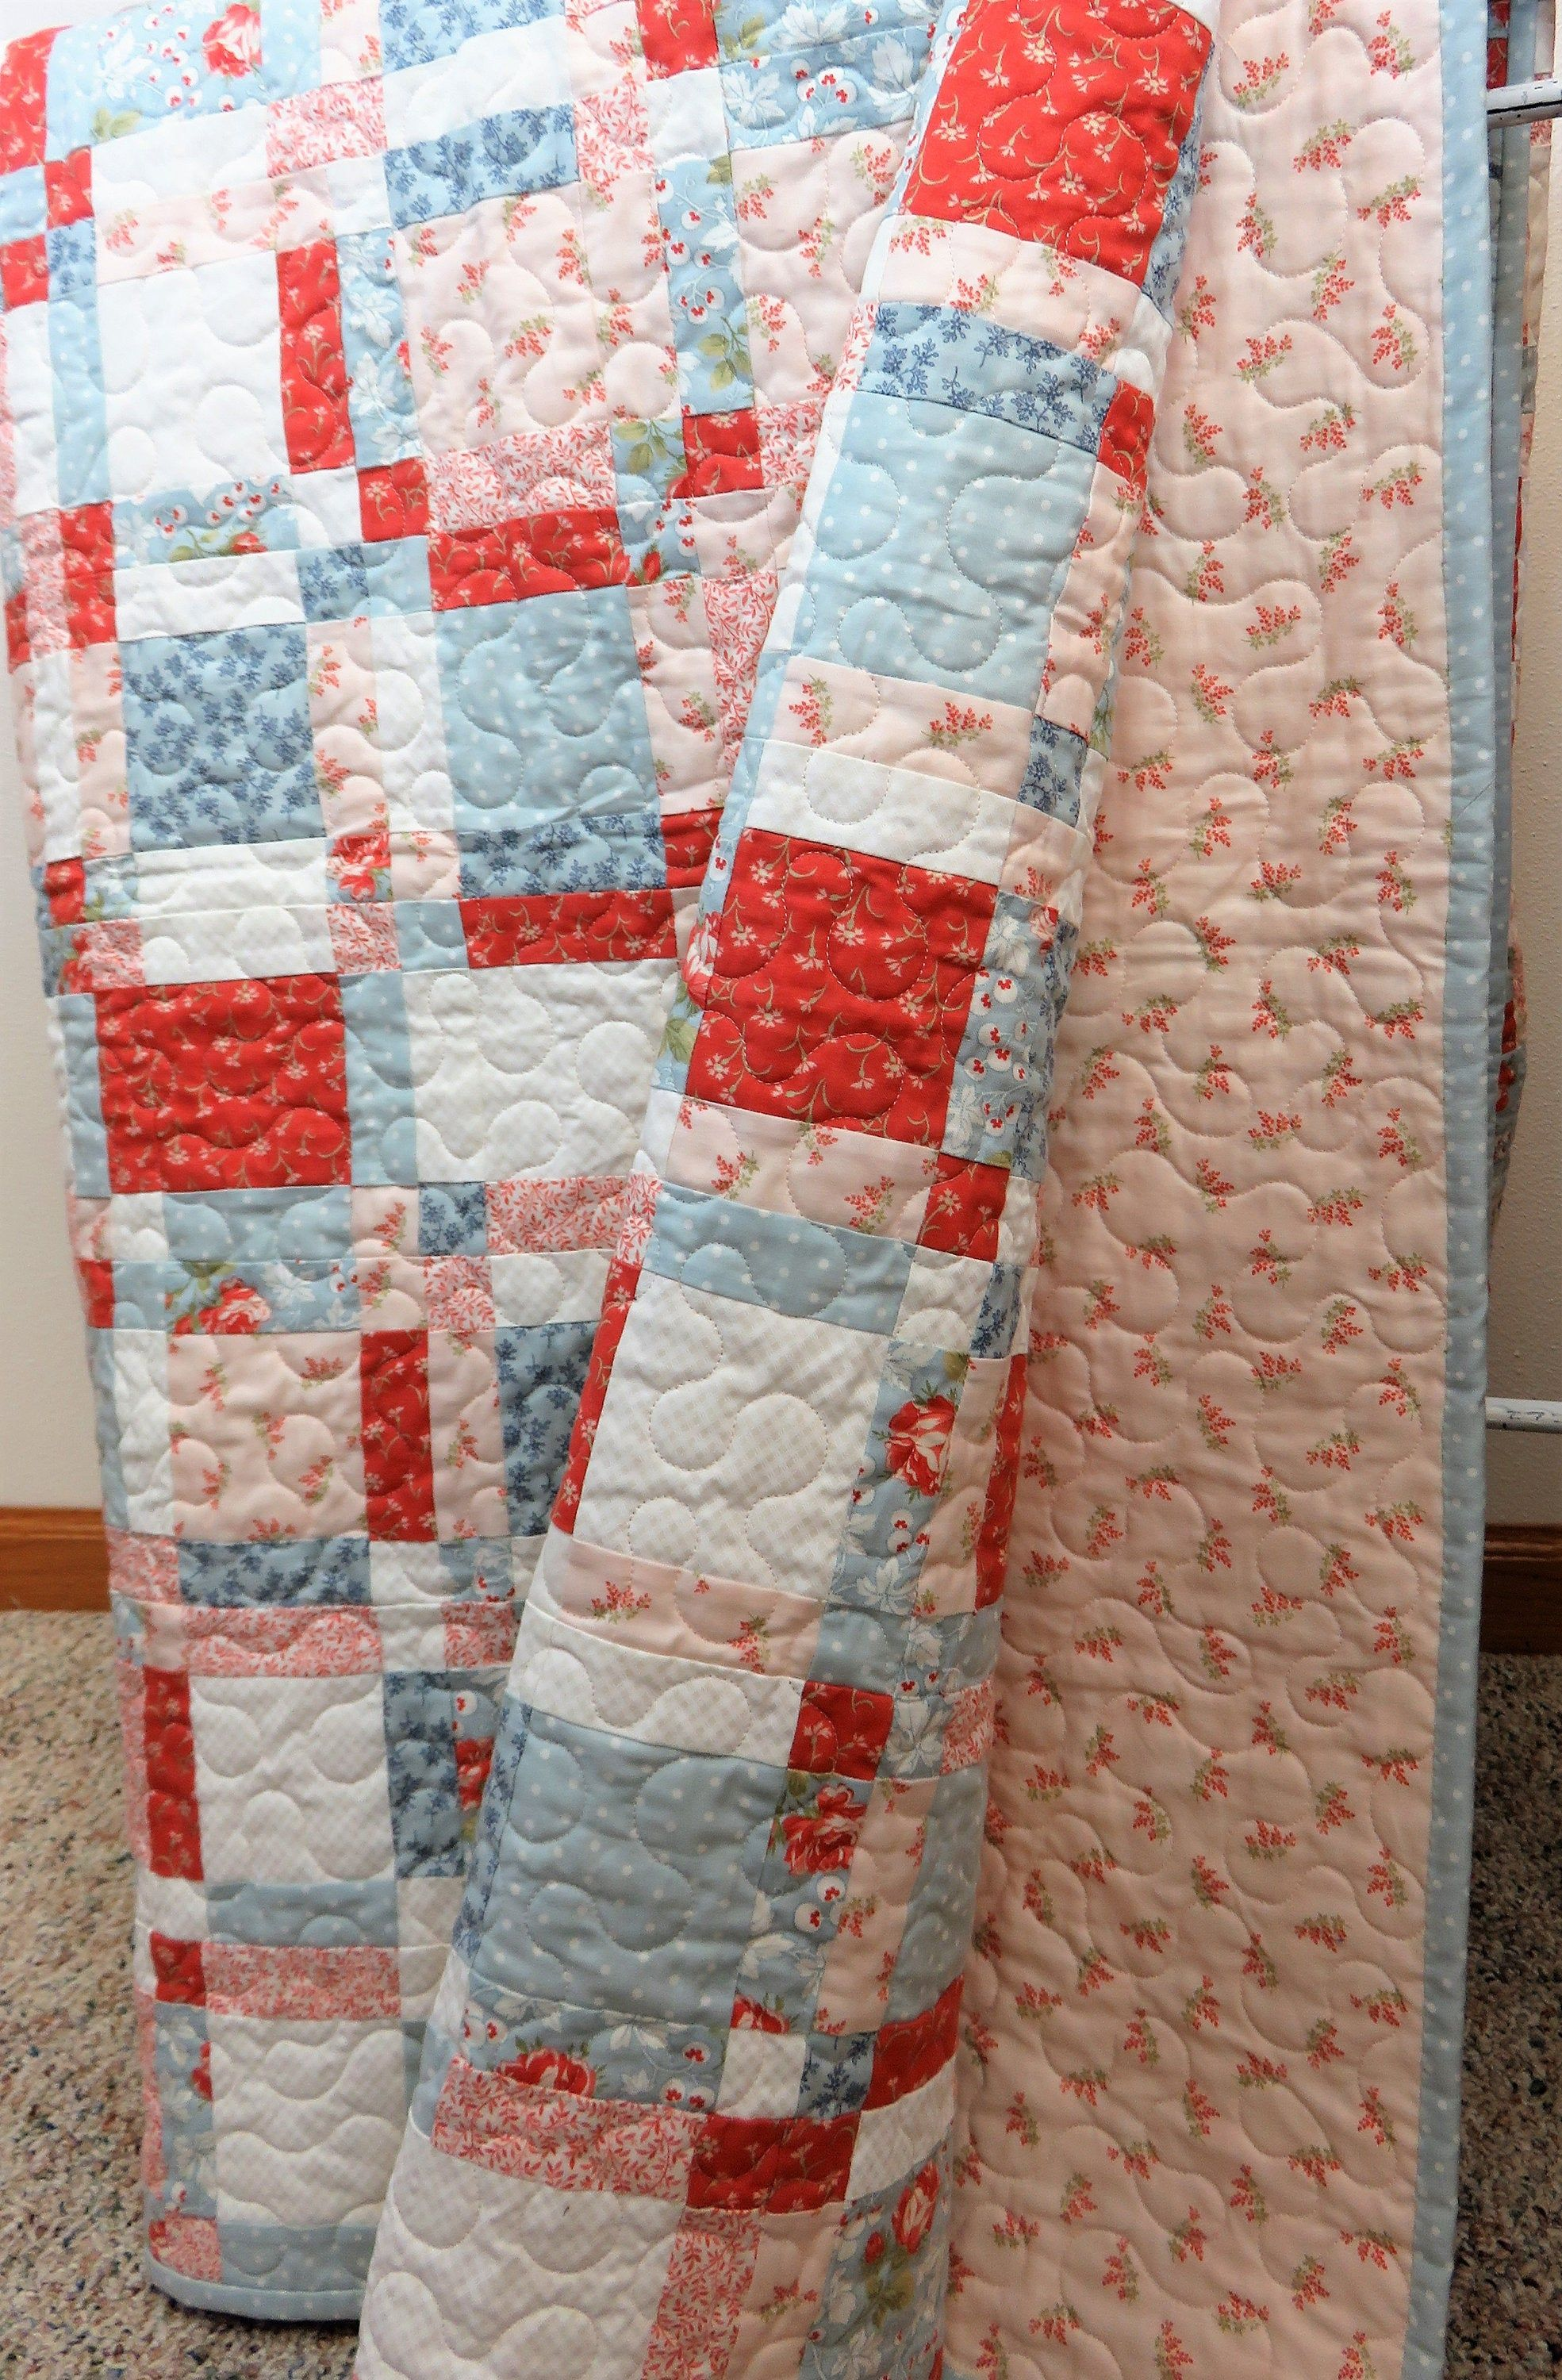 Handmade Quilt For Sale Quilted Throw Twin Size Quilt Full Etsy In 2020 Throw Quilt Handmade Quilts For Sale Handmade Quilts